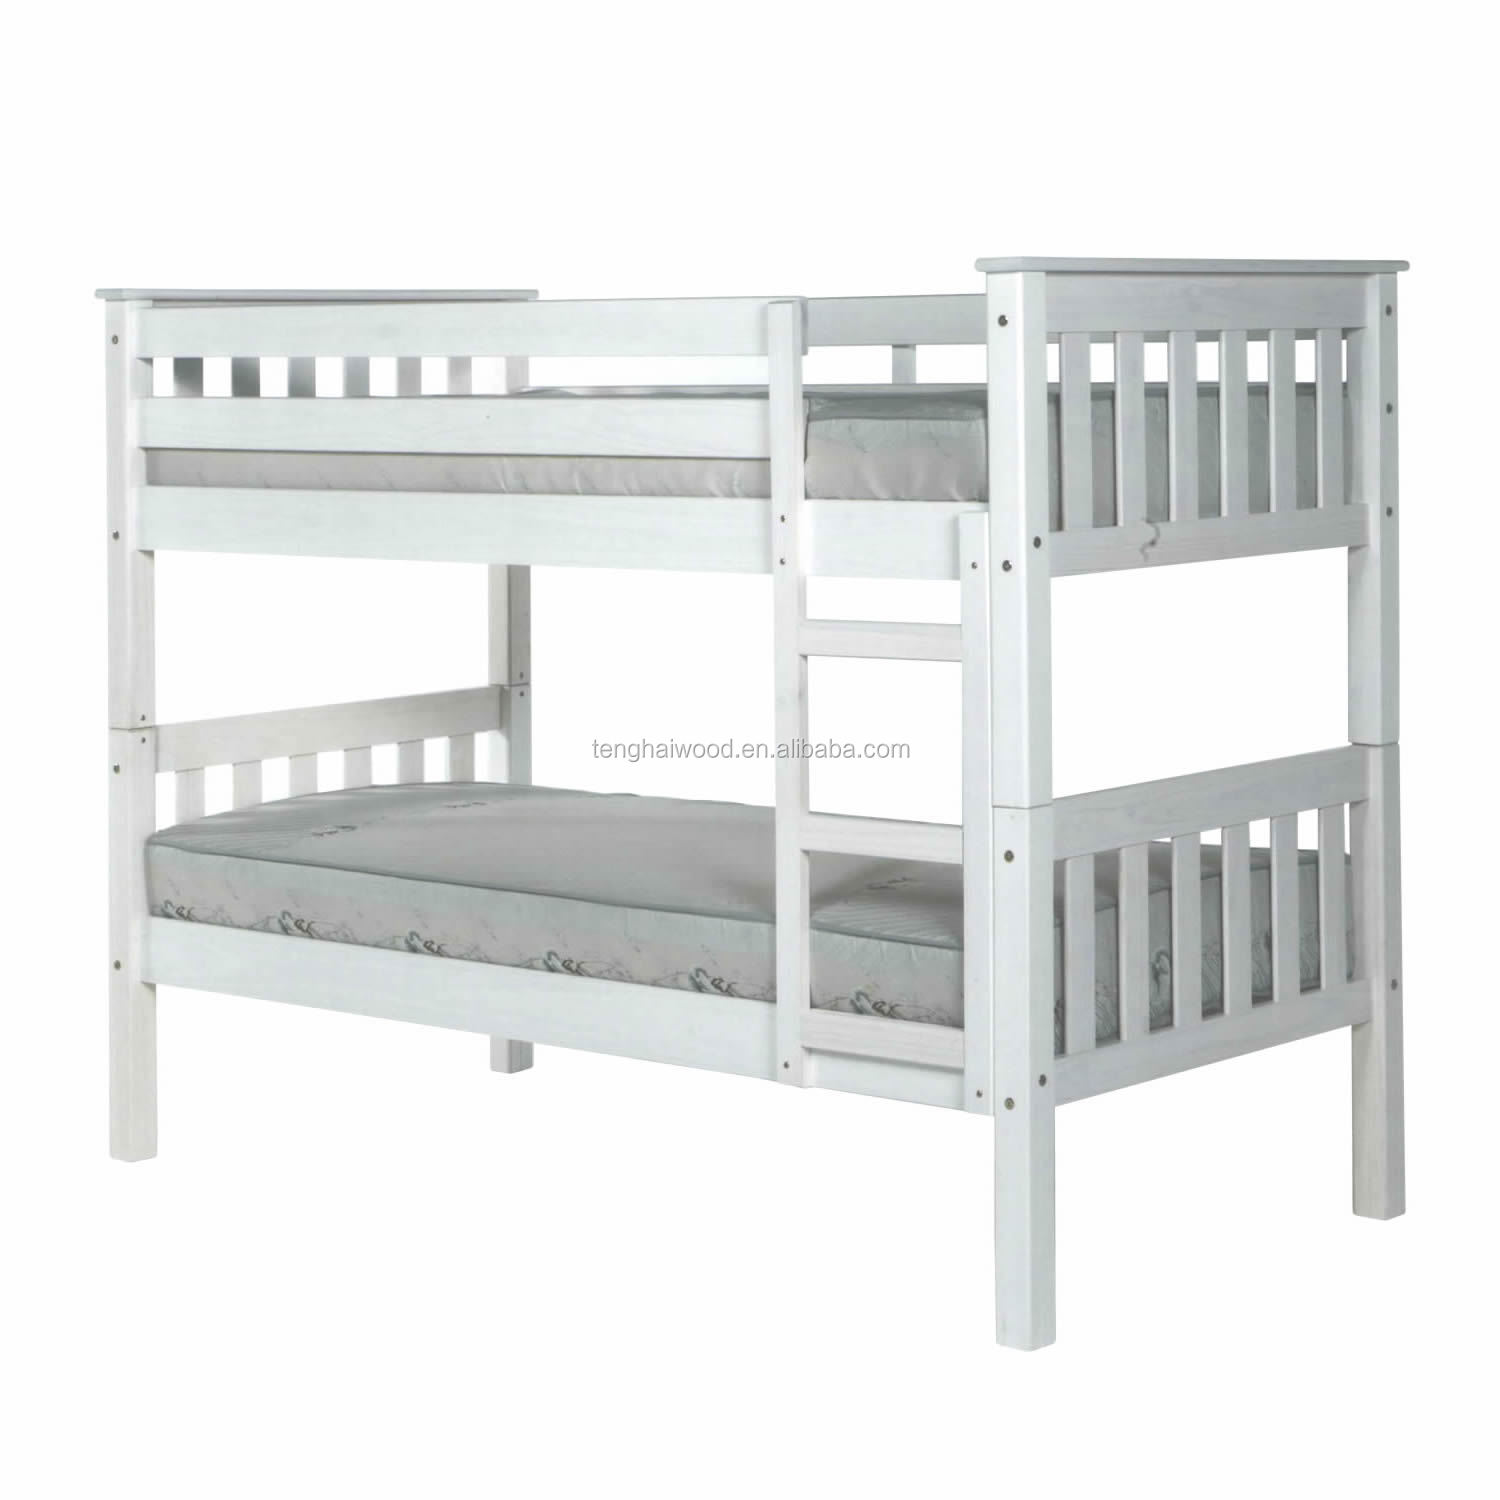 Double deck bed wood buy double deck bed wood product on for Double deck bed images